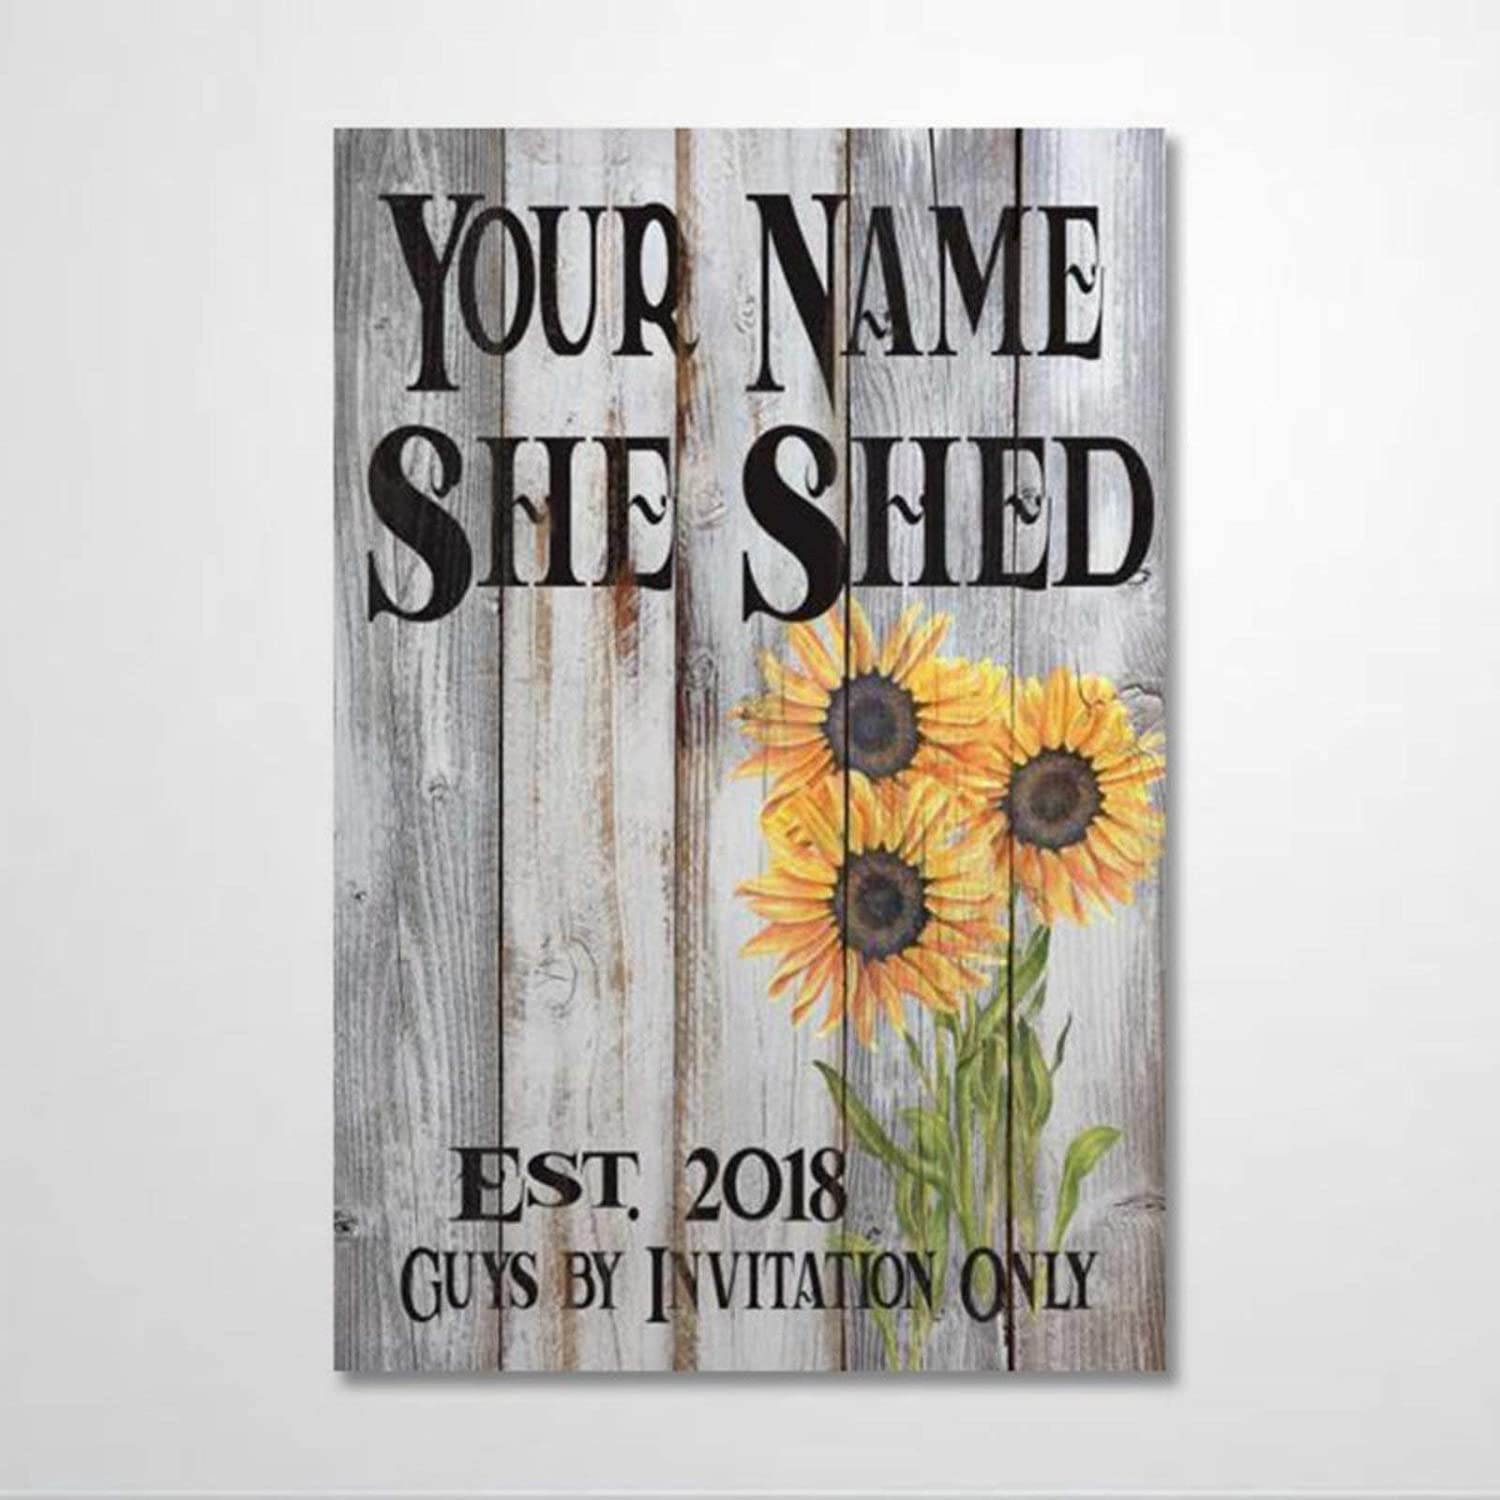 BYRON HOYLE Custom Your Name and She Shed Wood Sign,Wooden Wall Hanging Art,Inspirational Farmhouse Wall Plaque,Rustic Home Decor for Living Room,Nursery,Bedroom,Porch,Gallery Wall